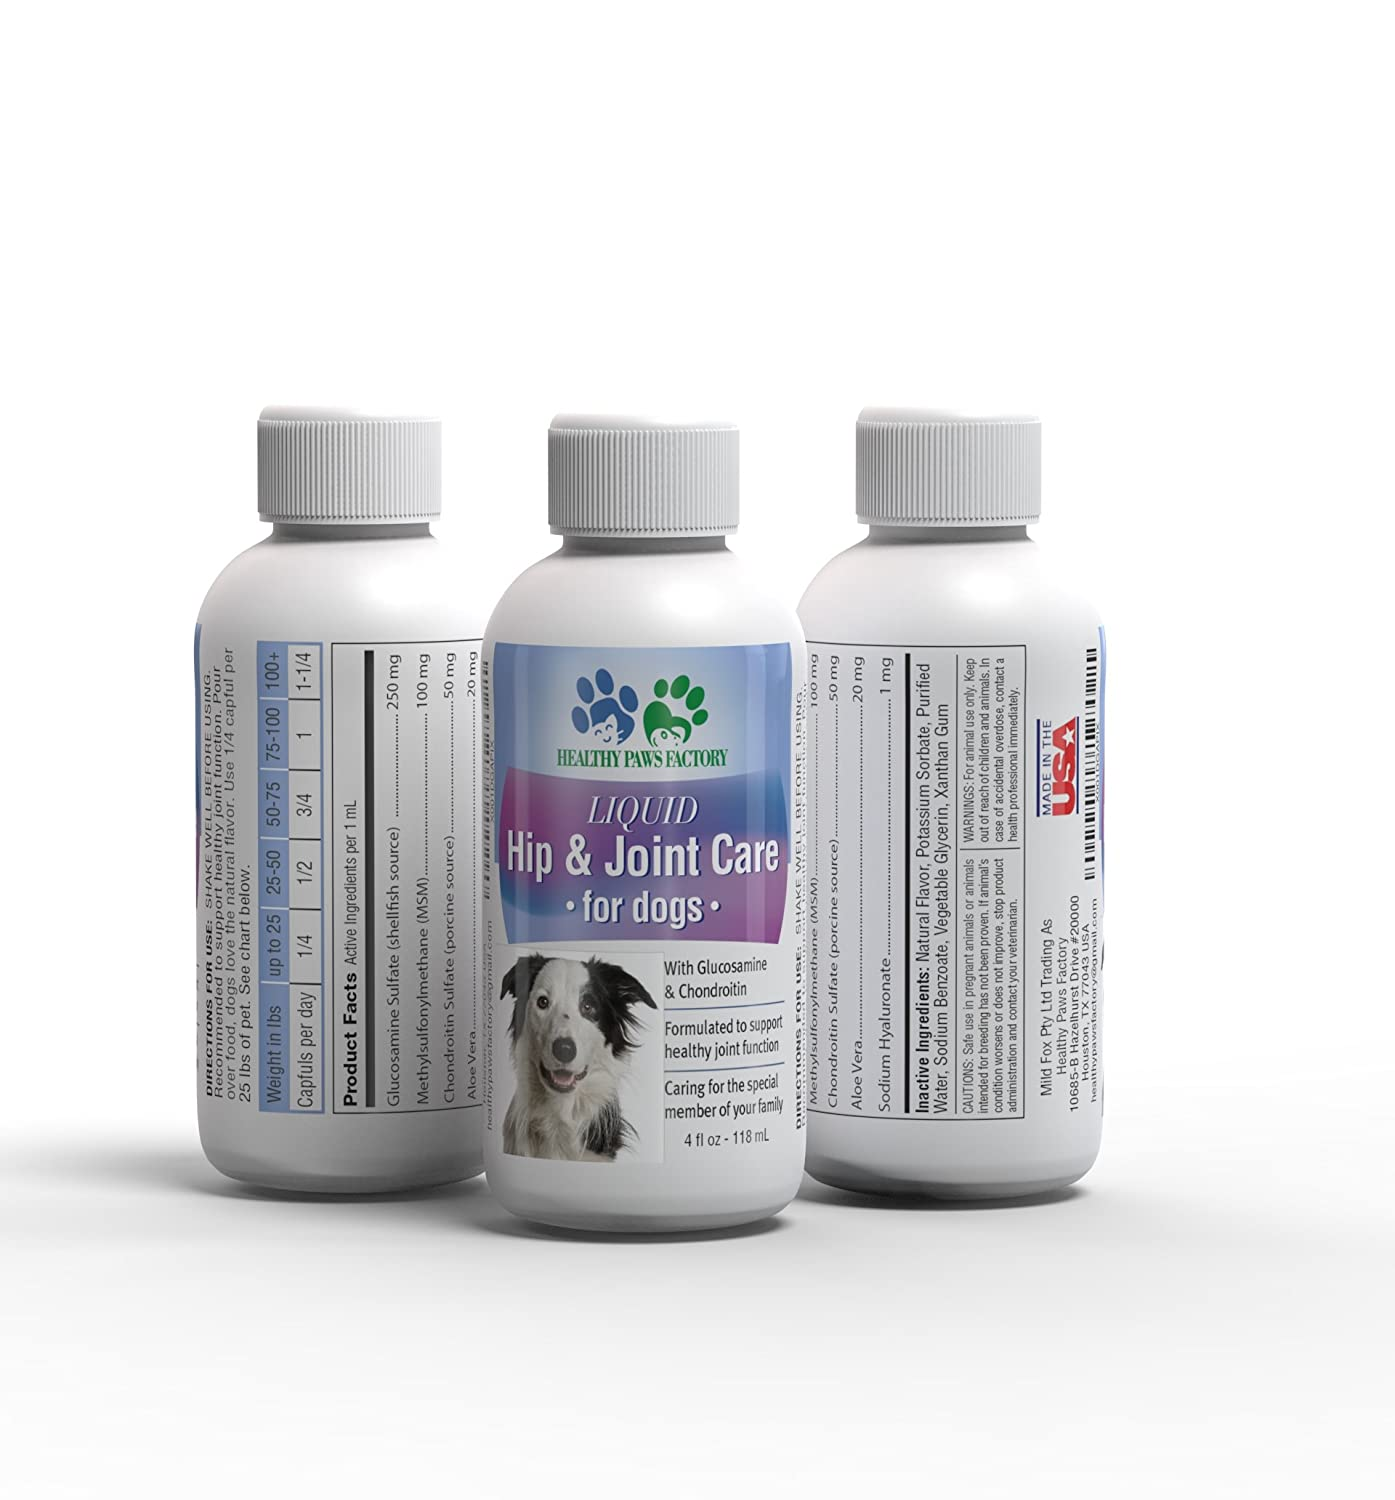 LIQUID HIP & JOINT CARE FOR DOGS Glucosamine Chondroitin MSM Amino Acid Supplement For Dogs Aloe Vera Heals Protects Repairs Supports Joints, 4 oz Bottle